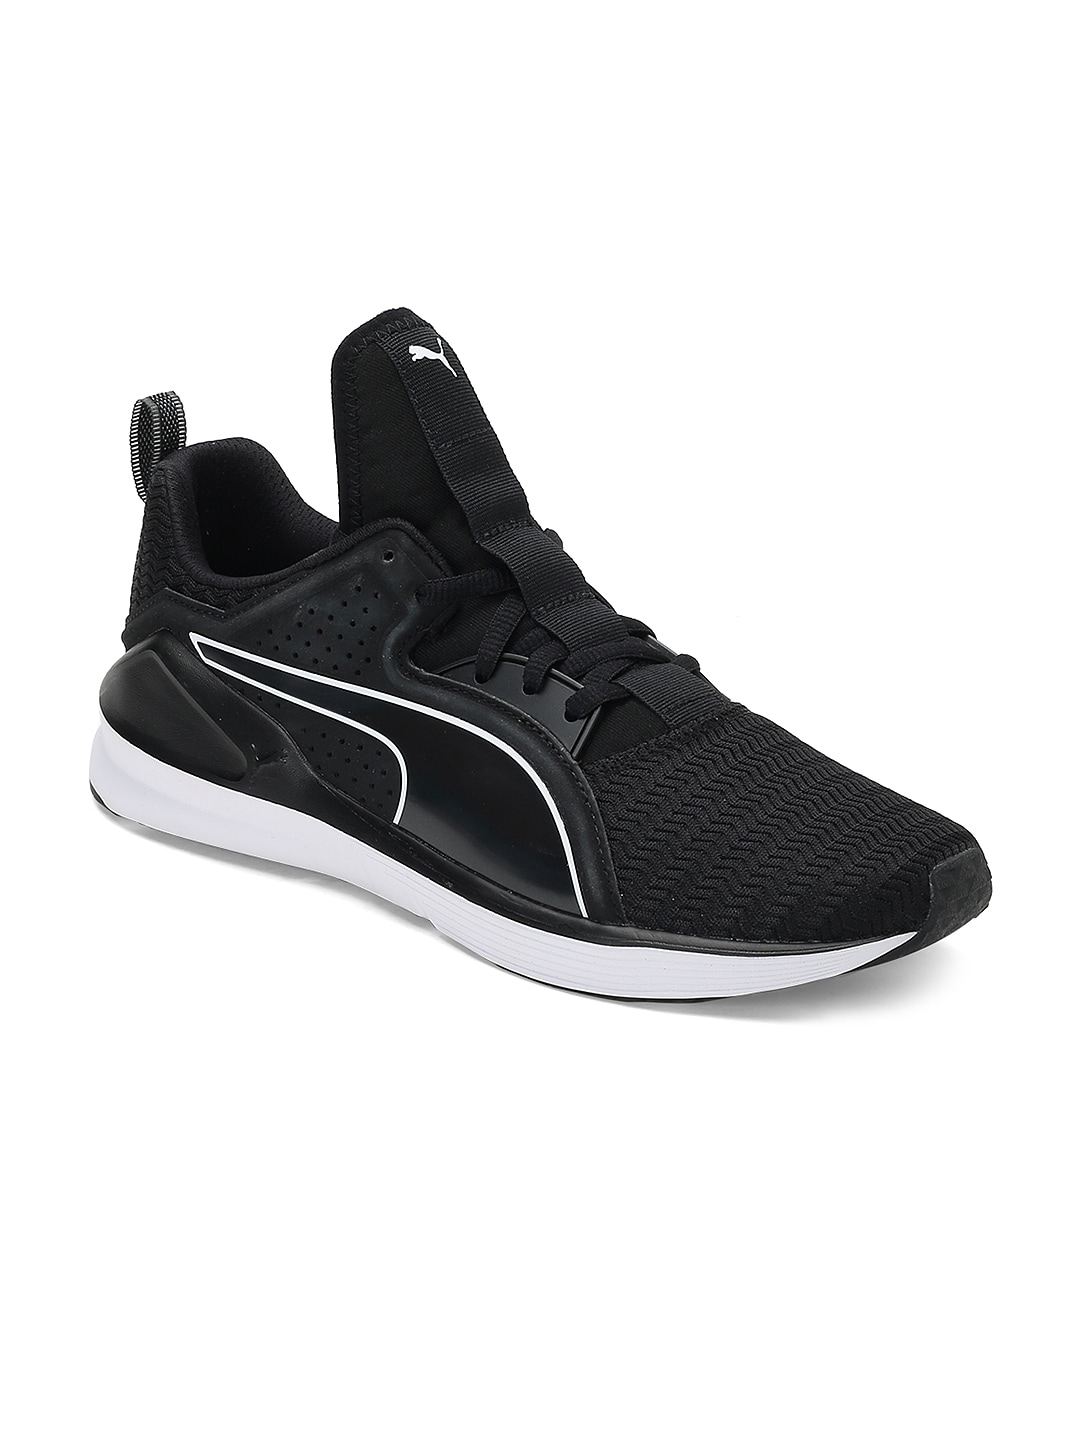 caab8d7adf74 Puma Fierce - Buy Puma Fierce online in India